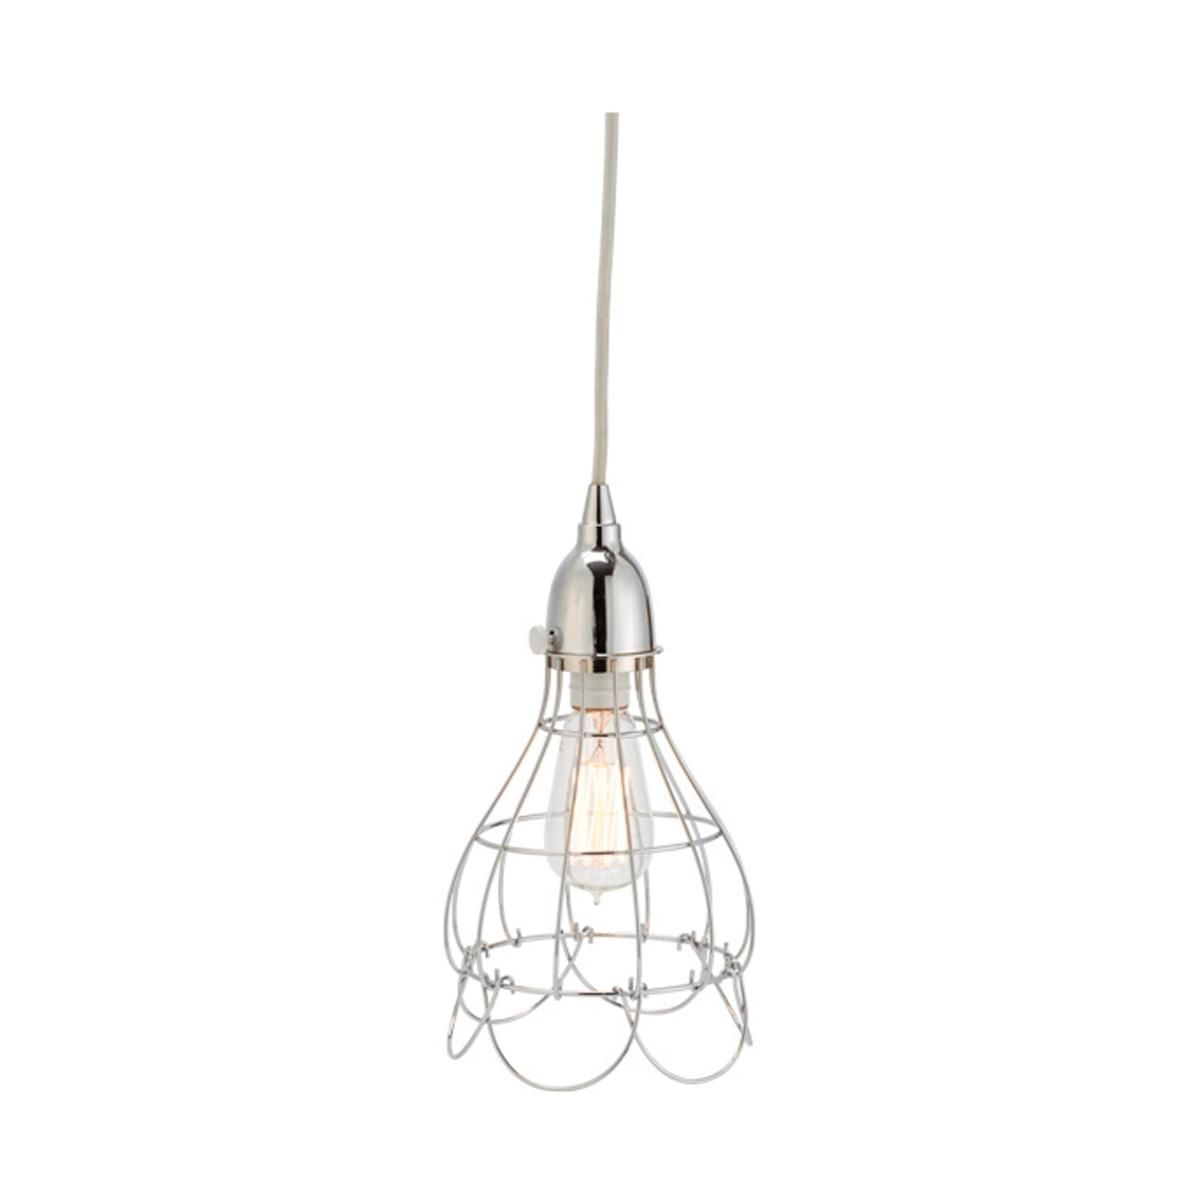 Industrial Cage Work Light Pendant 3 finishes!